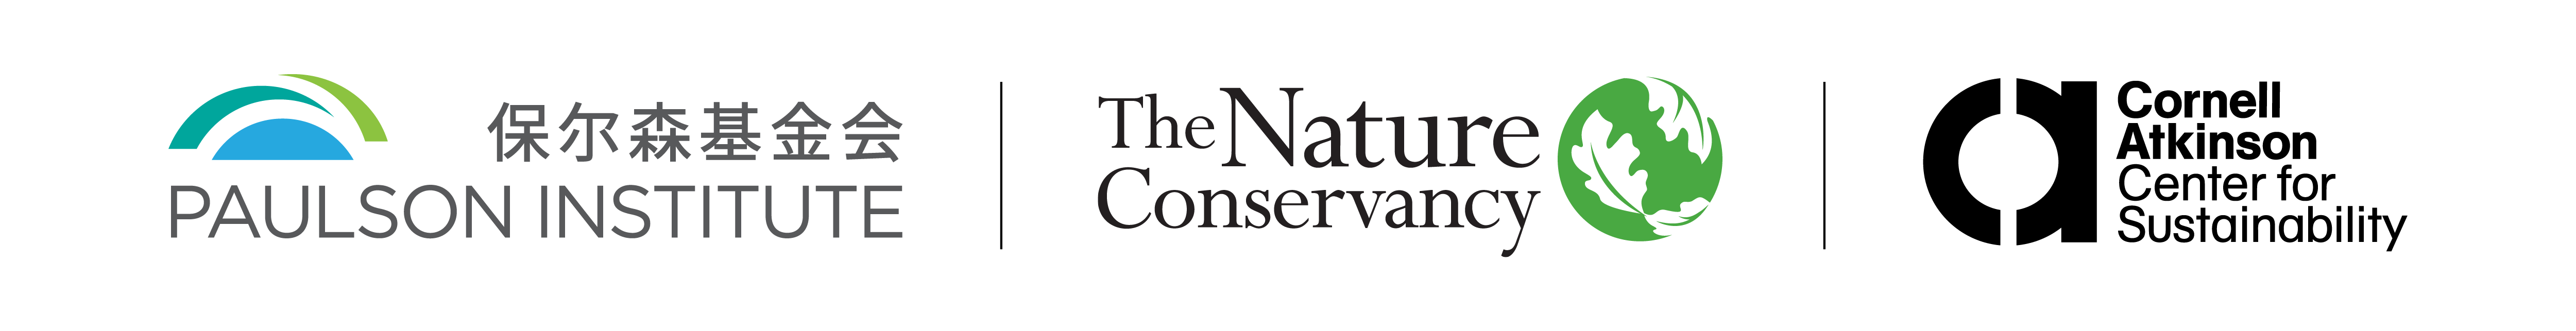 three logos representing Paulson Institute, The Nature Conservancy, and Cornell Atkinson Center for Sustainability